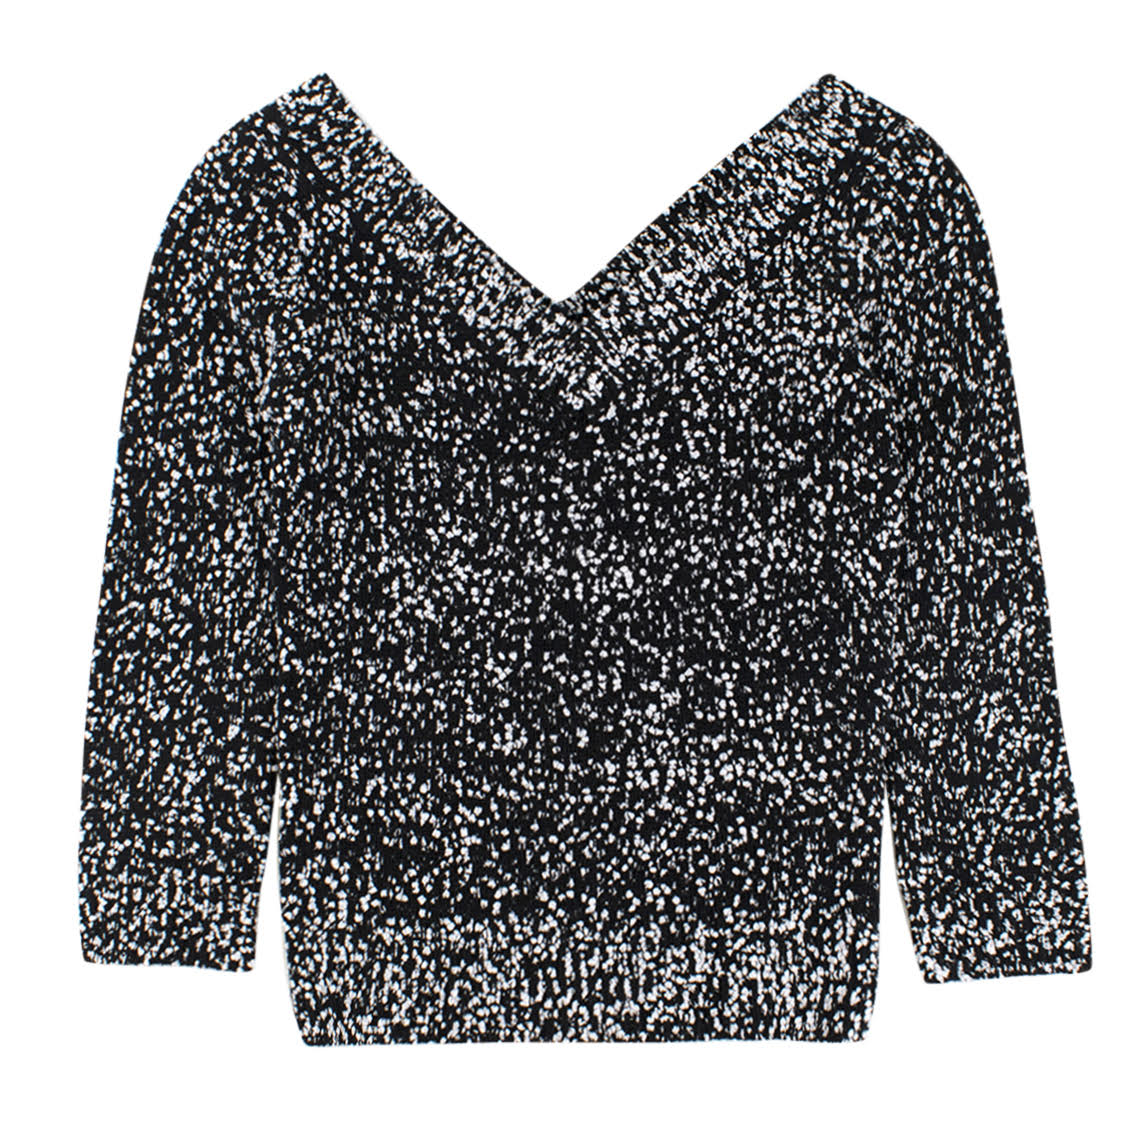 Michael Kors Collection boucle-knit sweater